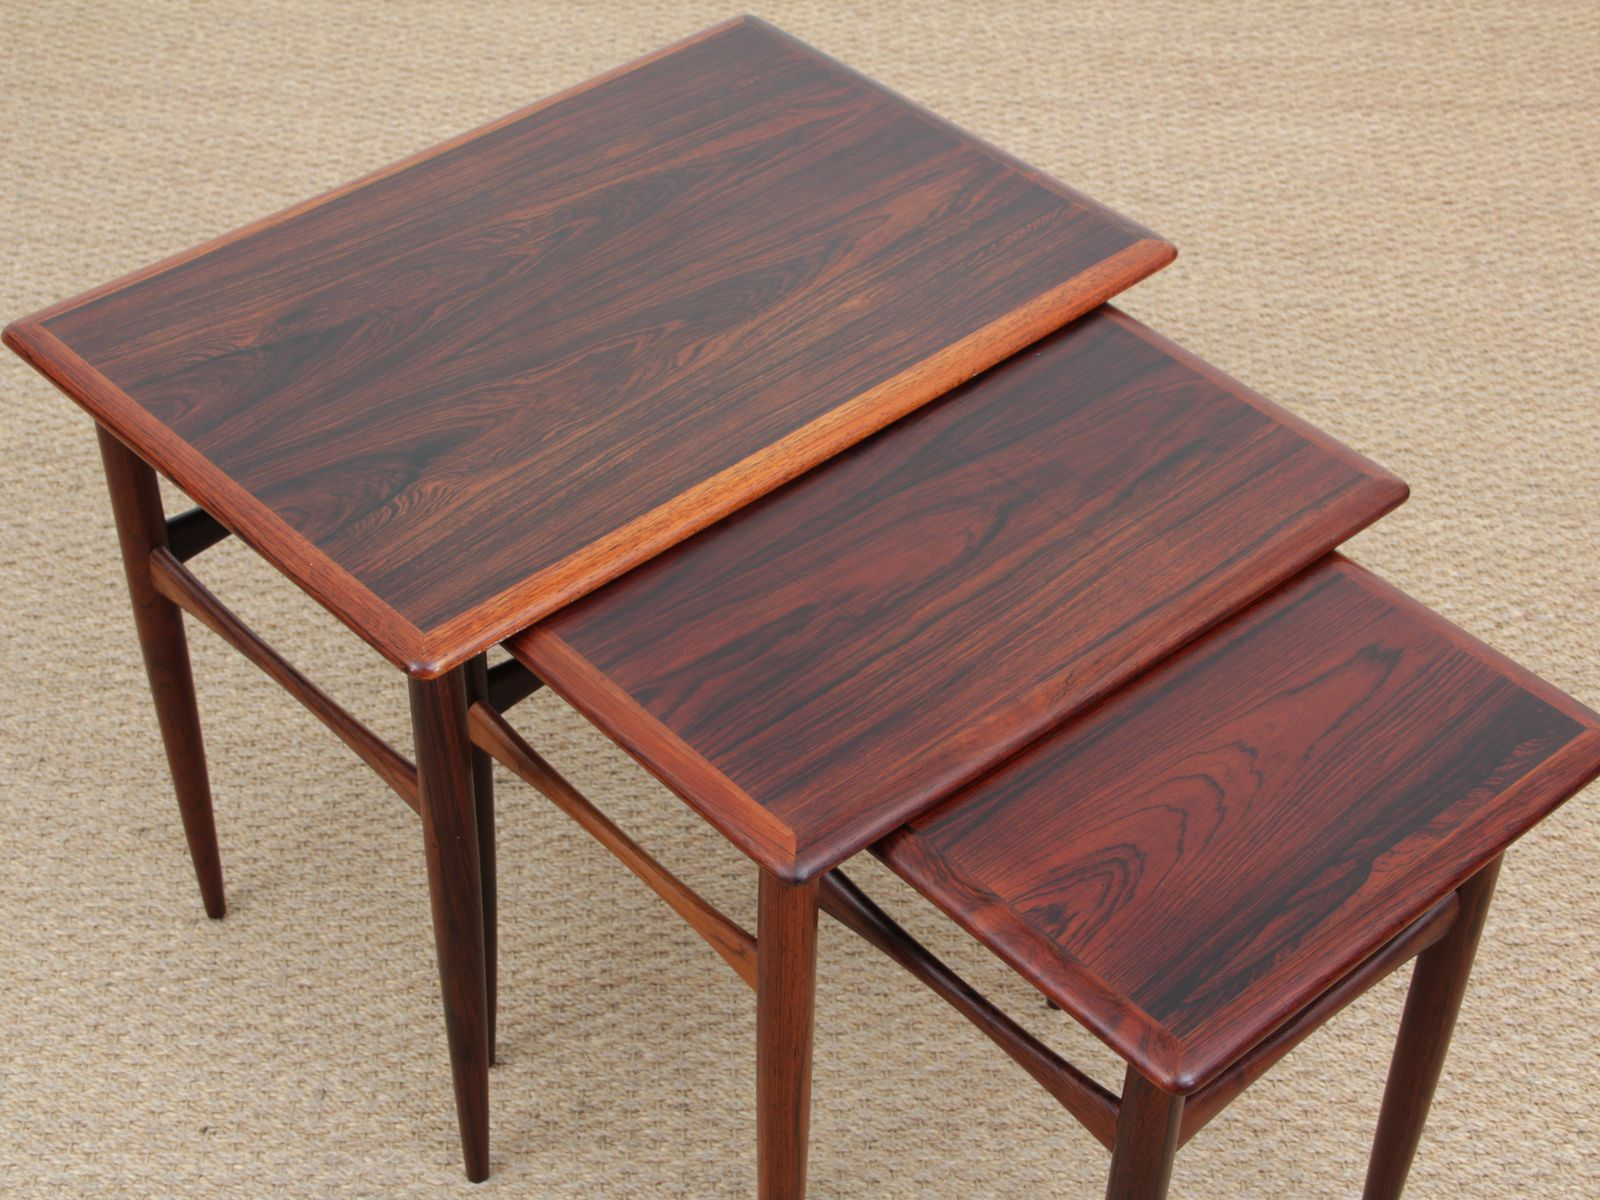 Mid Century Modern Scandinavian Nesting Tables In Rio Rosewood By Poul  Hundevad, 1960s